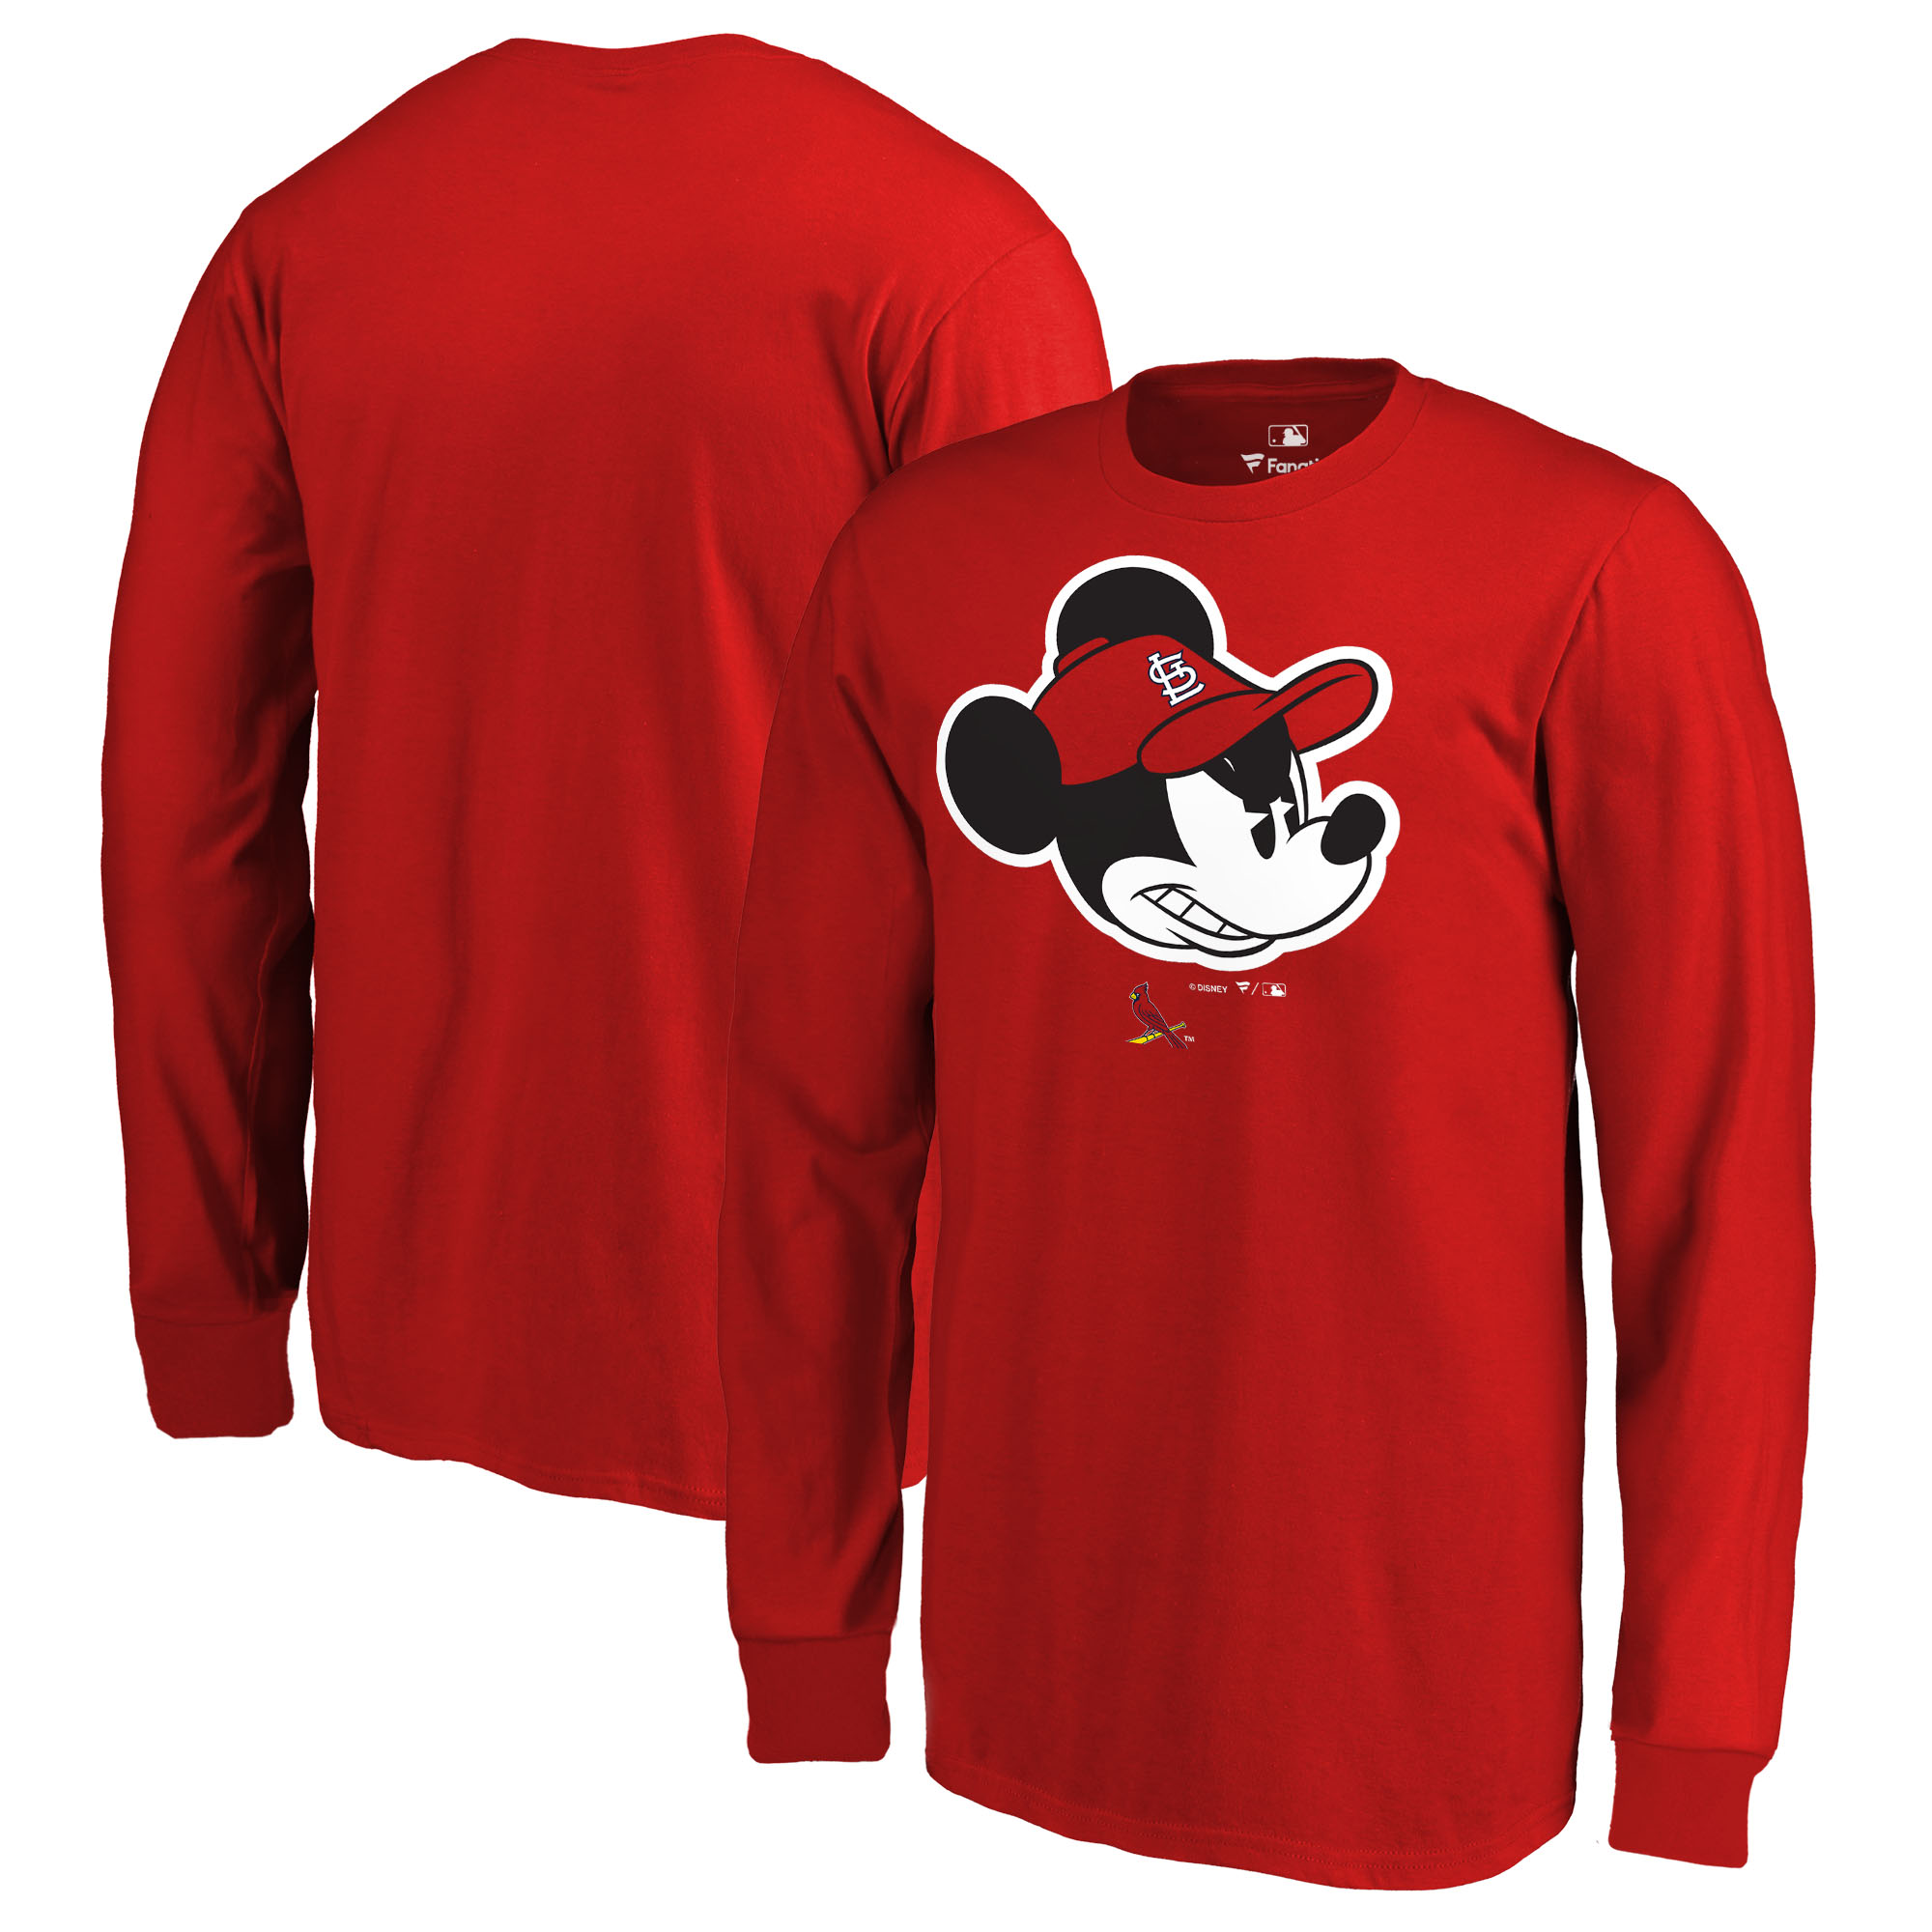 St. Louis Cardinals Fanatics Branded Youth Disney Game Face Long Sleeve T-Shirt - Red